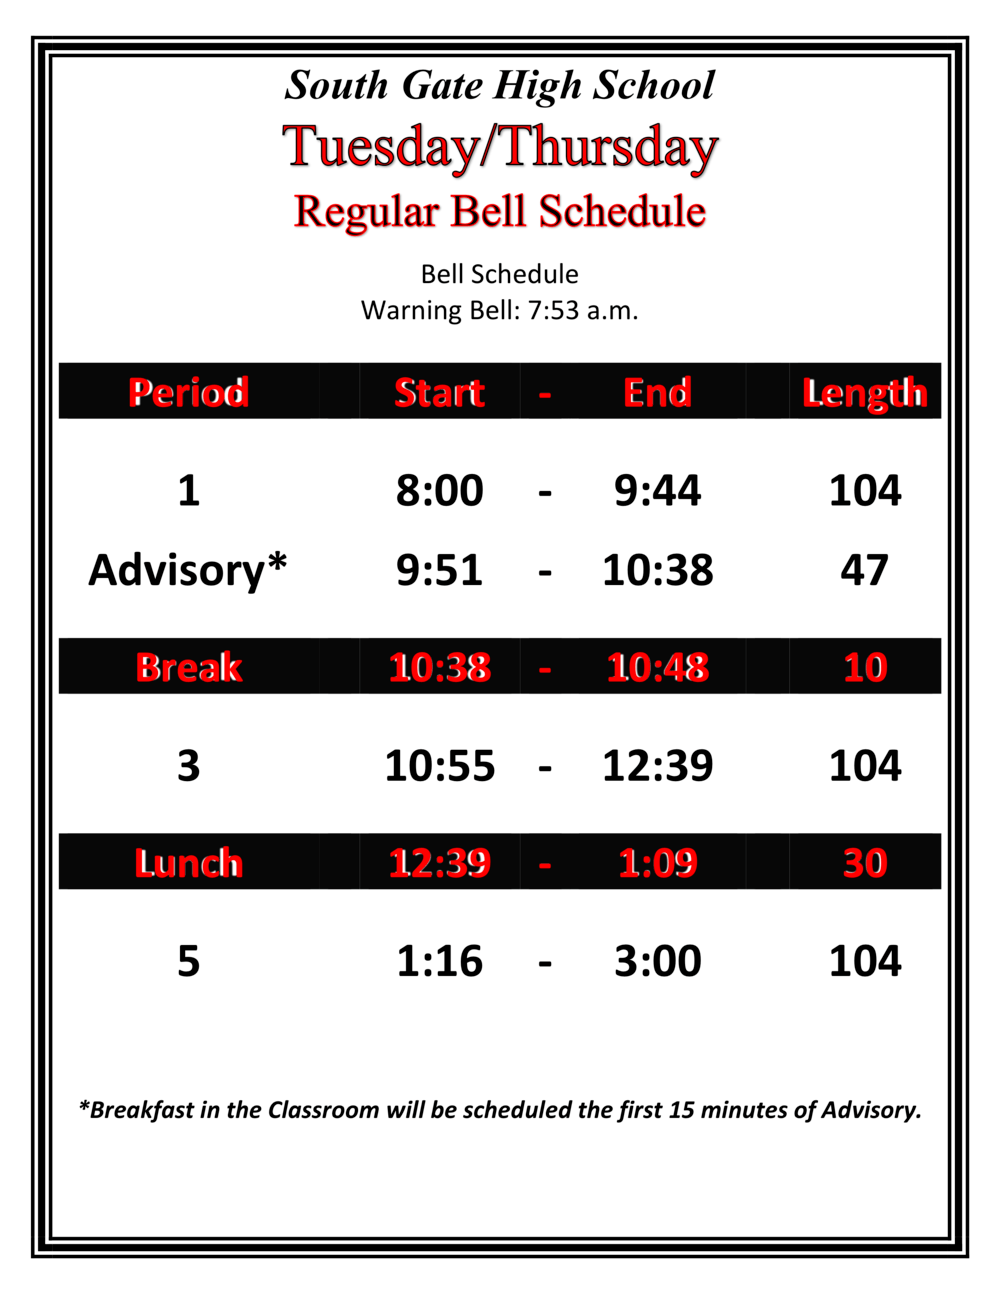 Tuesday Thursday Bell Schedule